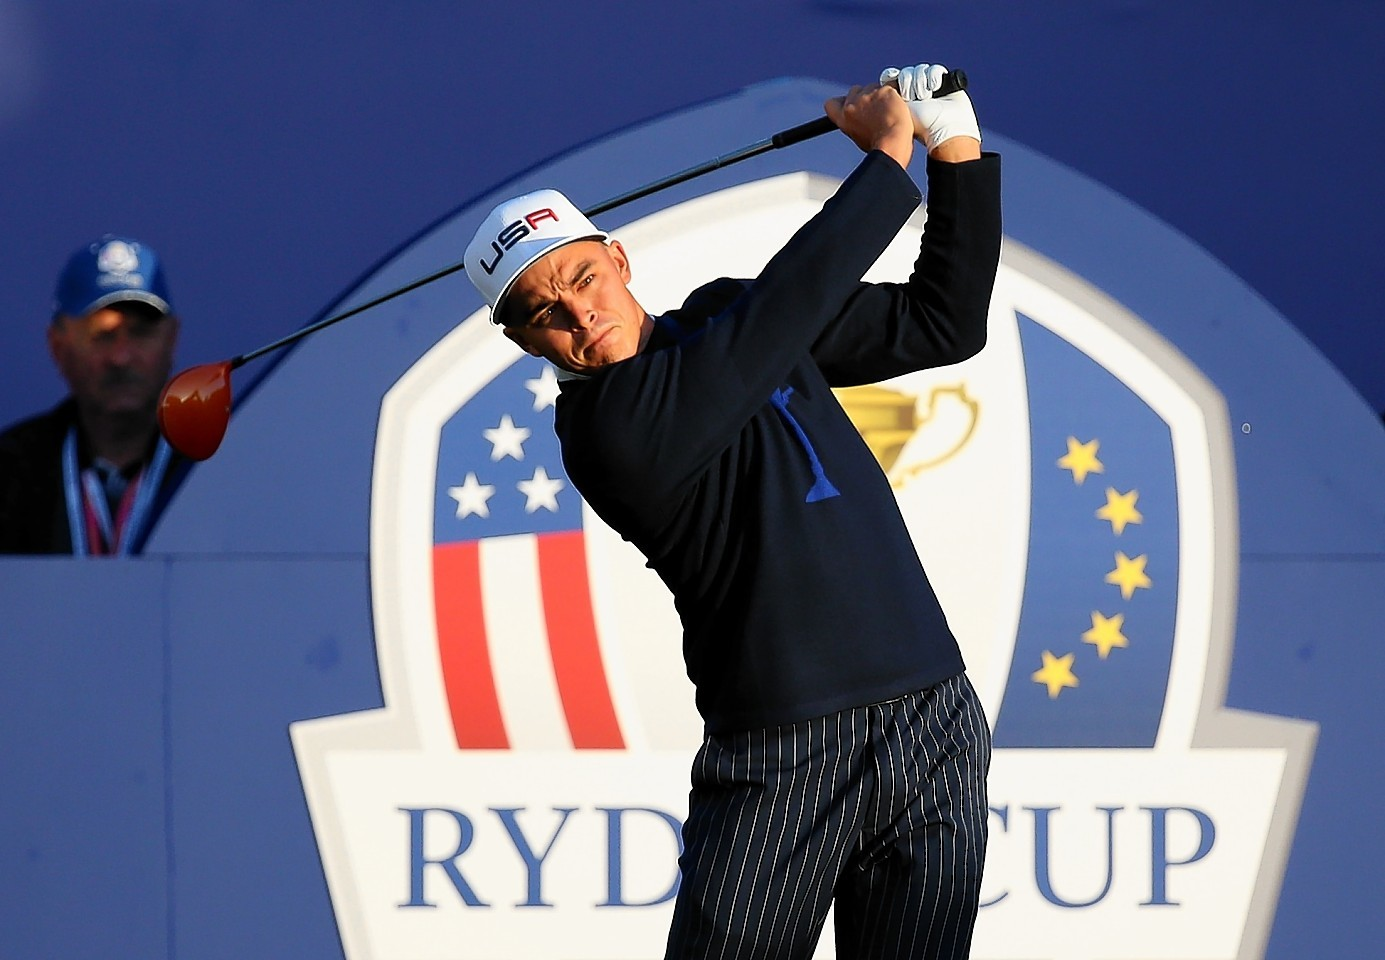 Rickie Fowler, representing USA  at the Ryder Cup, has hinted he is to return to Scotland